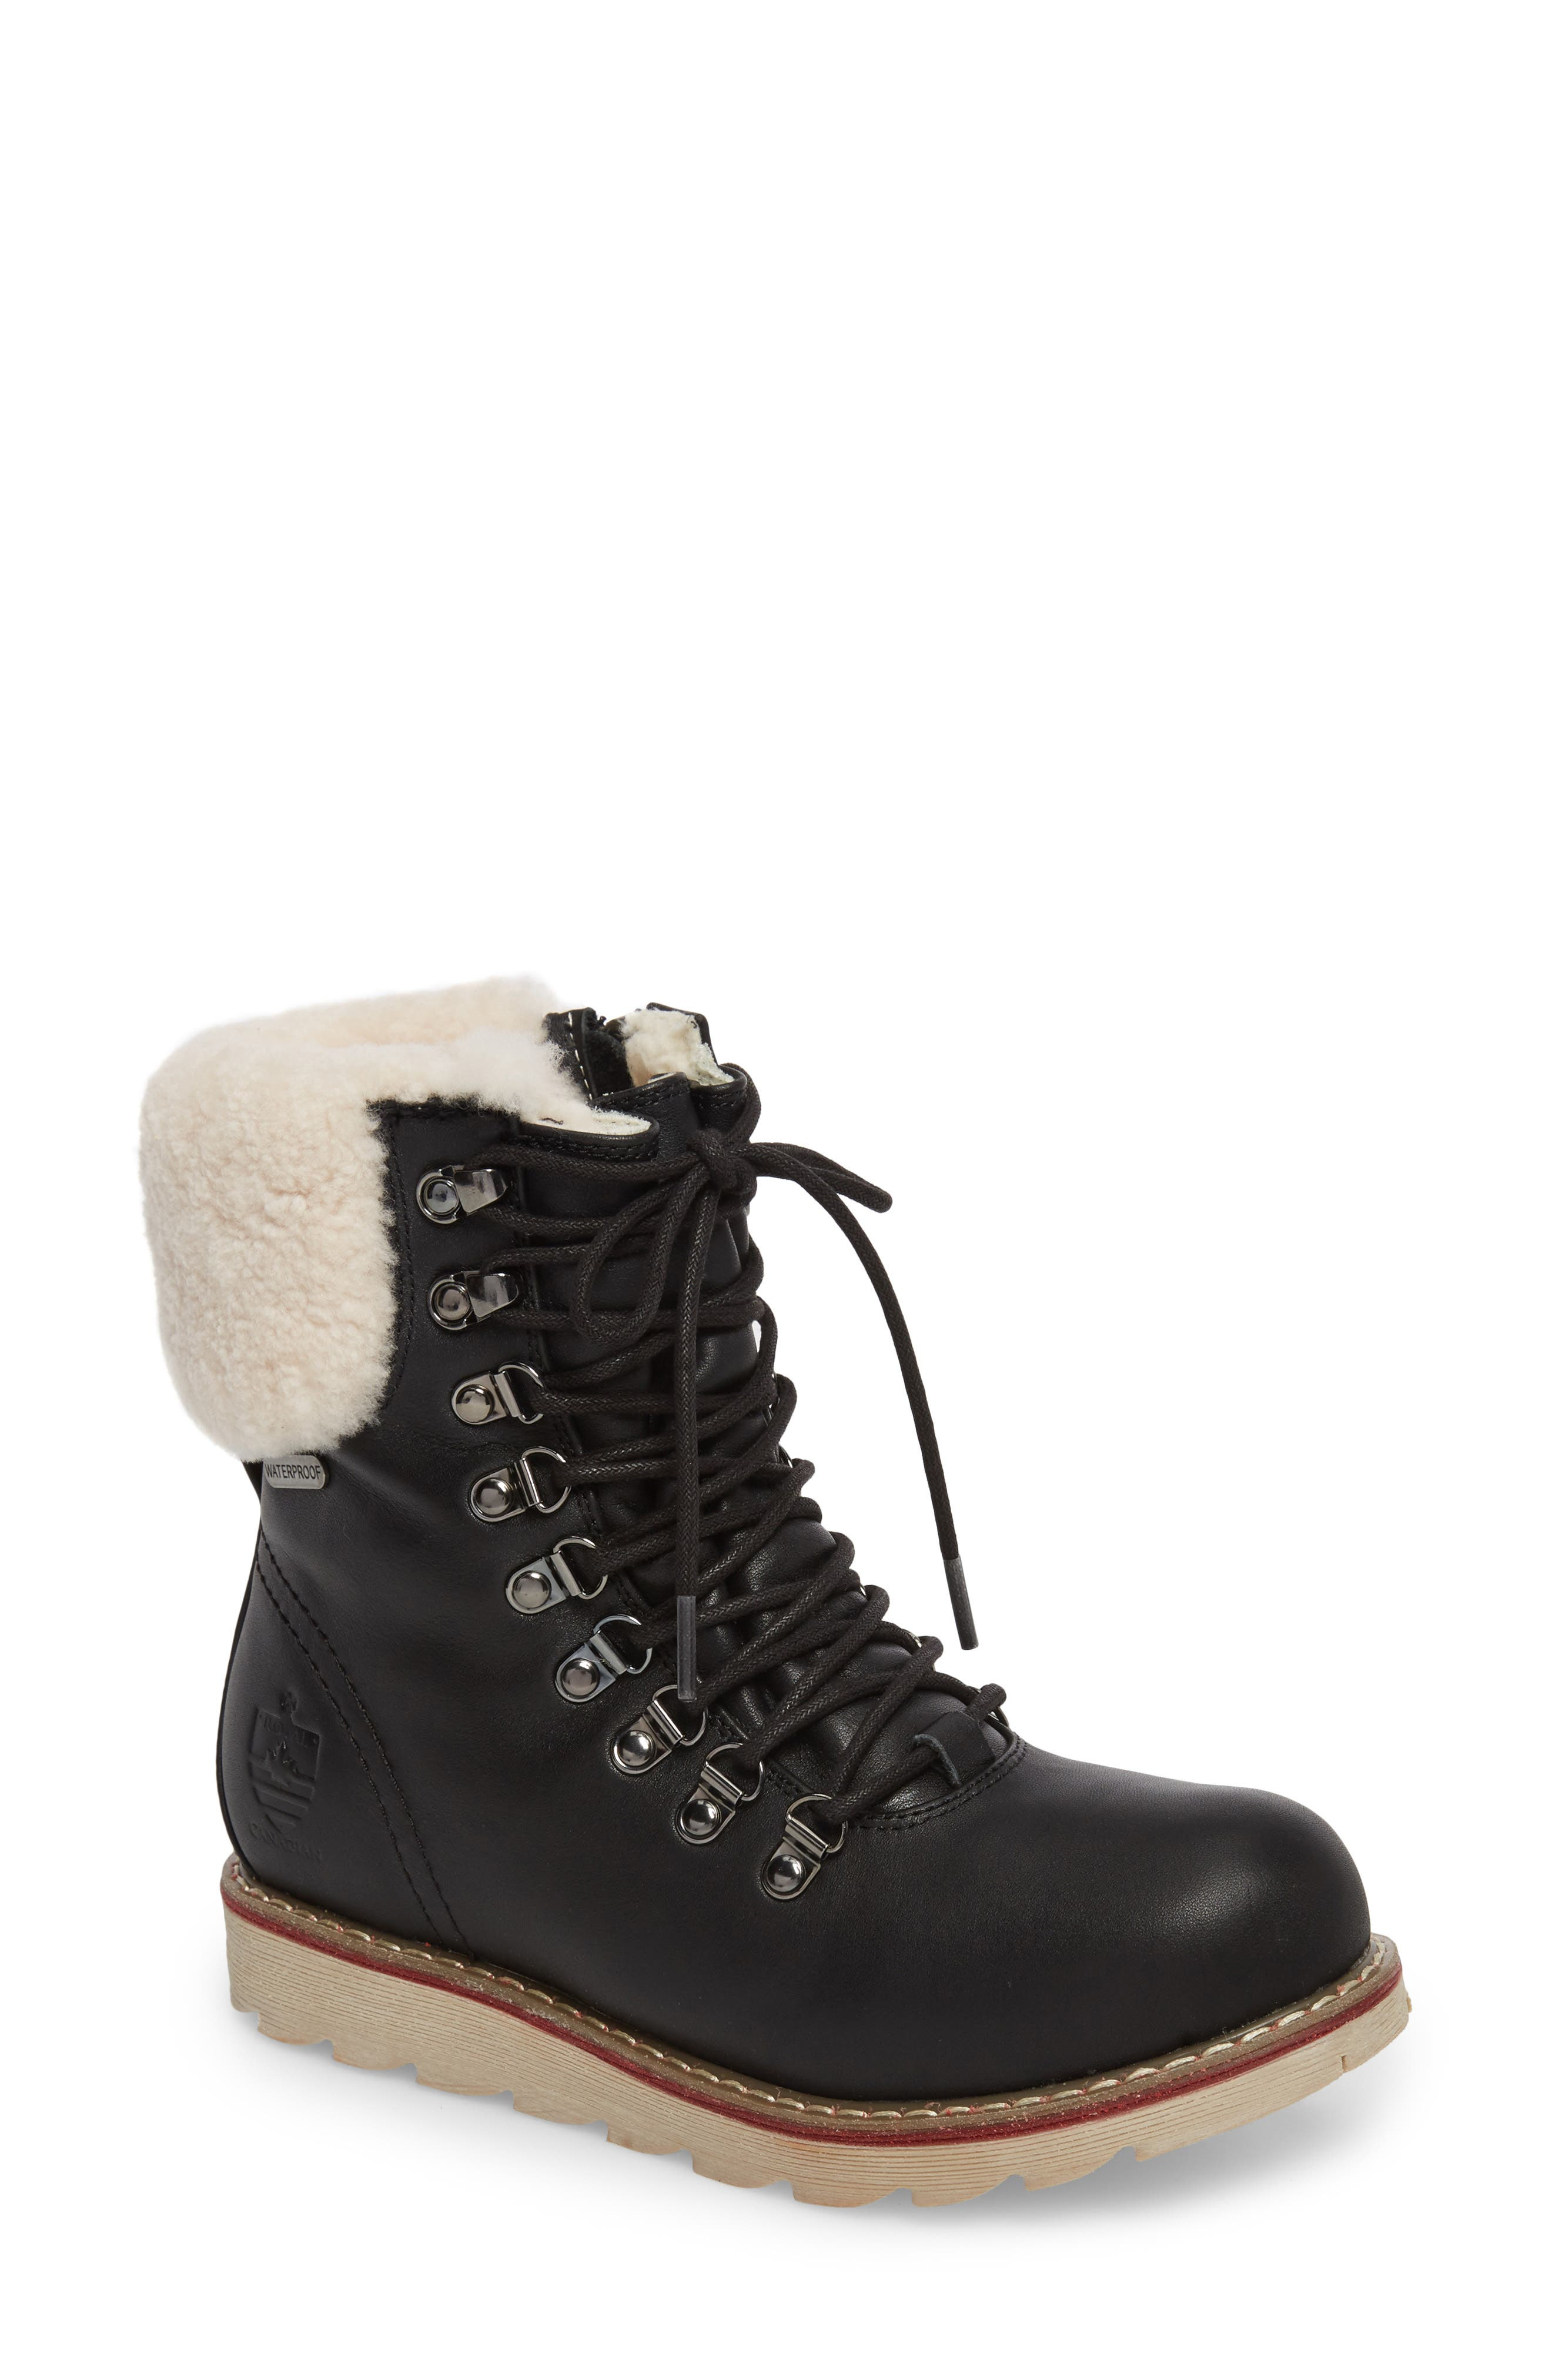 Lethbridge Waterproof Snow Boot with Genuine Shearling Cuff,                             Main thumbnail 1, color,                             BLACK LEATHER